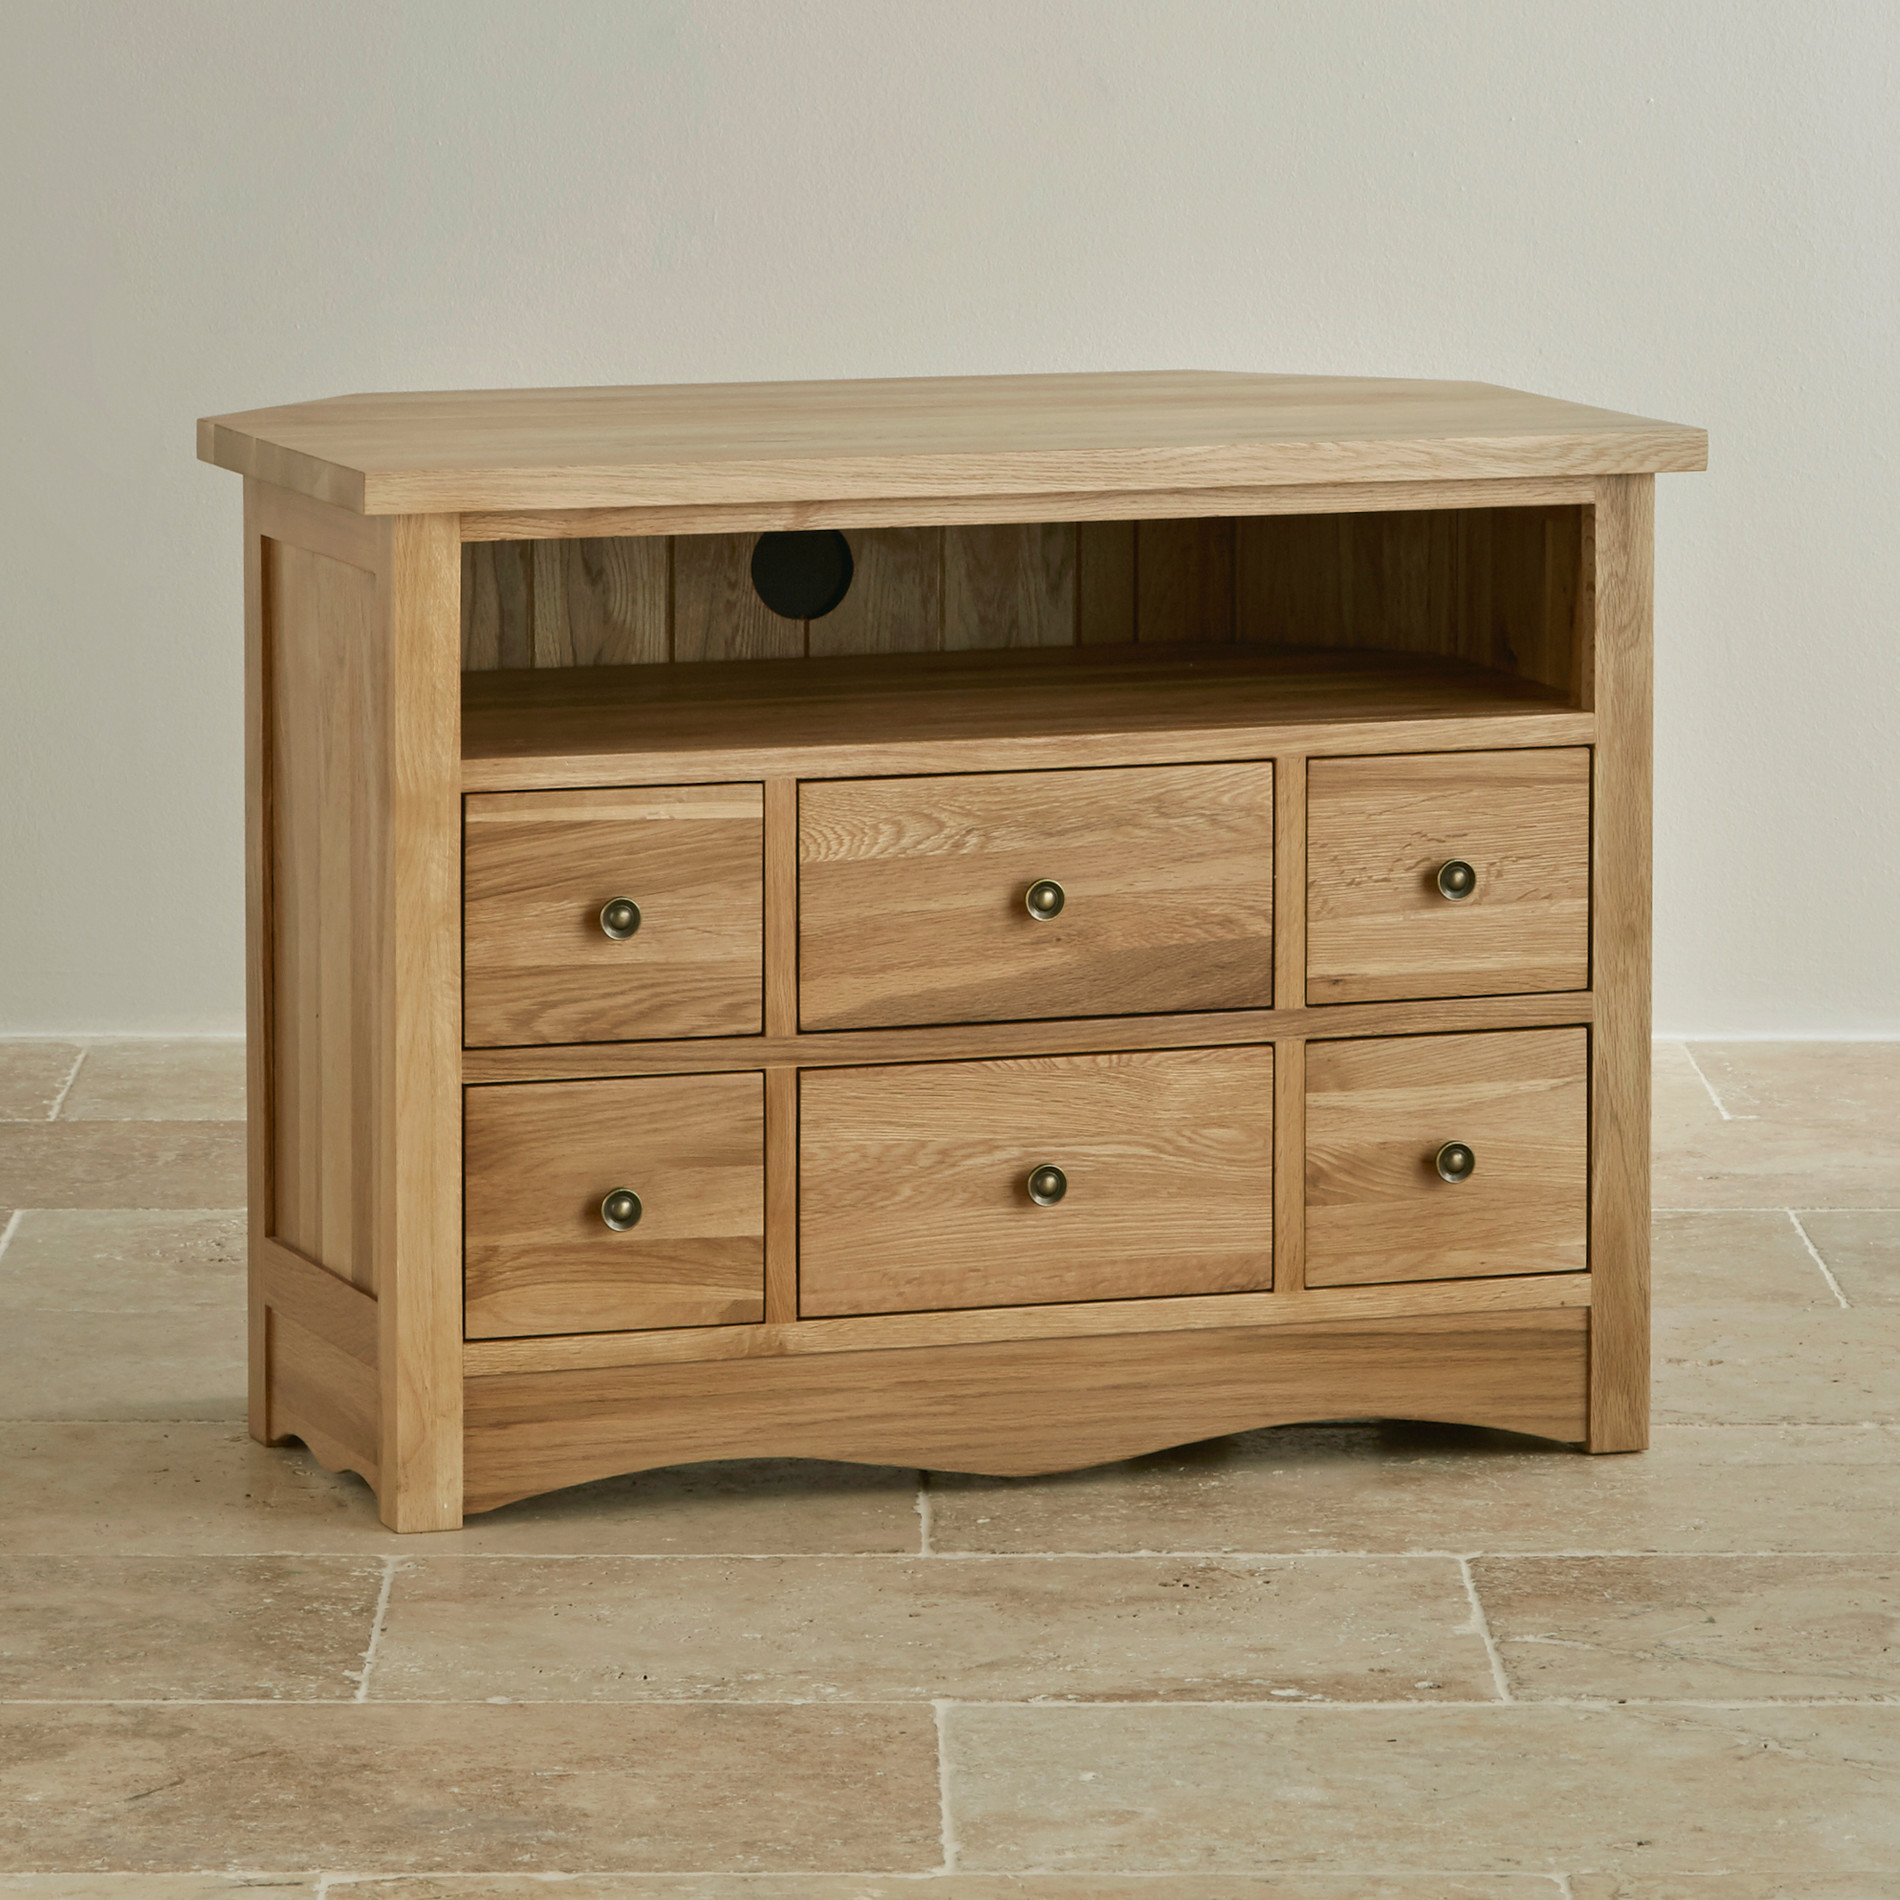 Cairo corner tv cabinet in natural solid oak oak for Corner cabinet